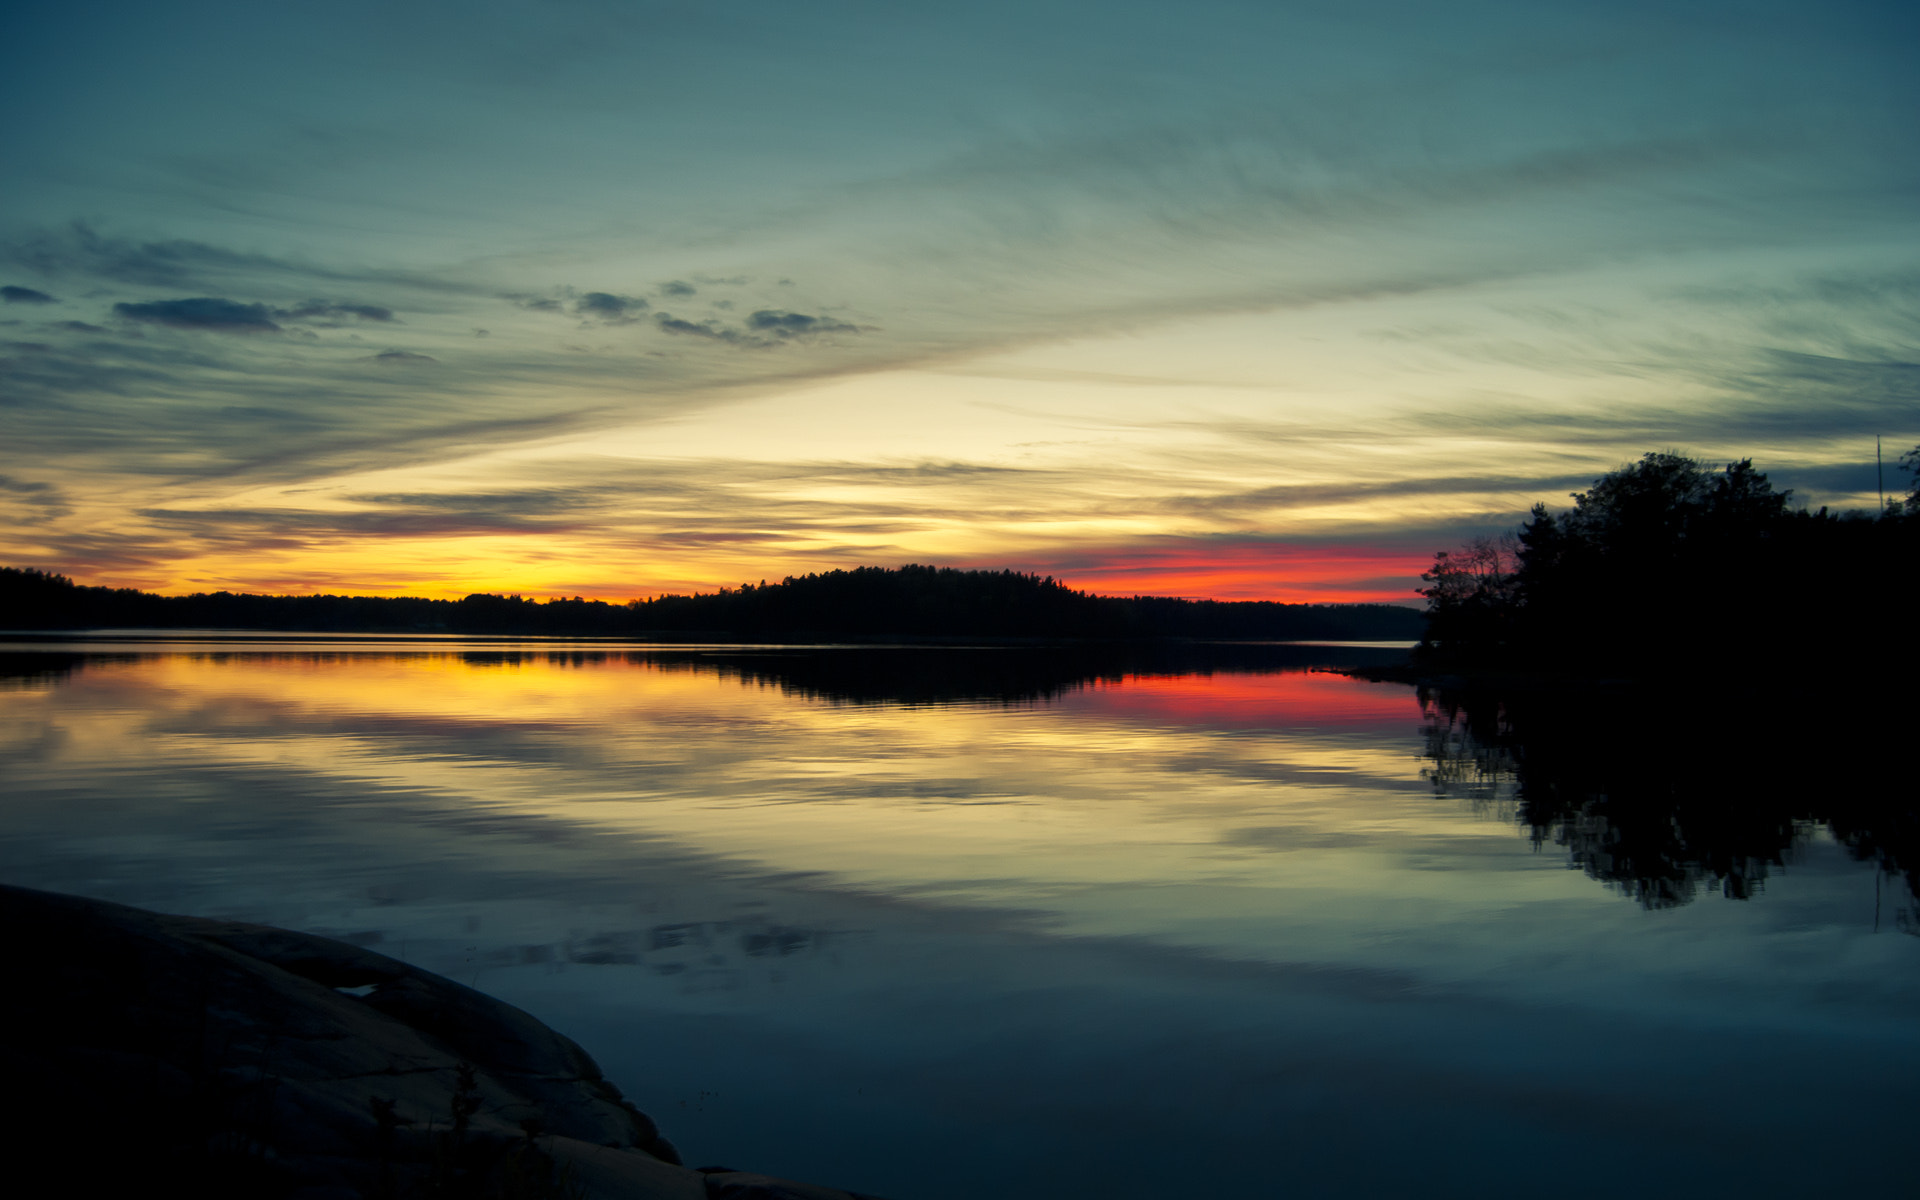 Photograph Sunset of two suns by Andreas Hellqvist on 500px